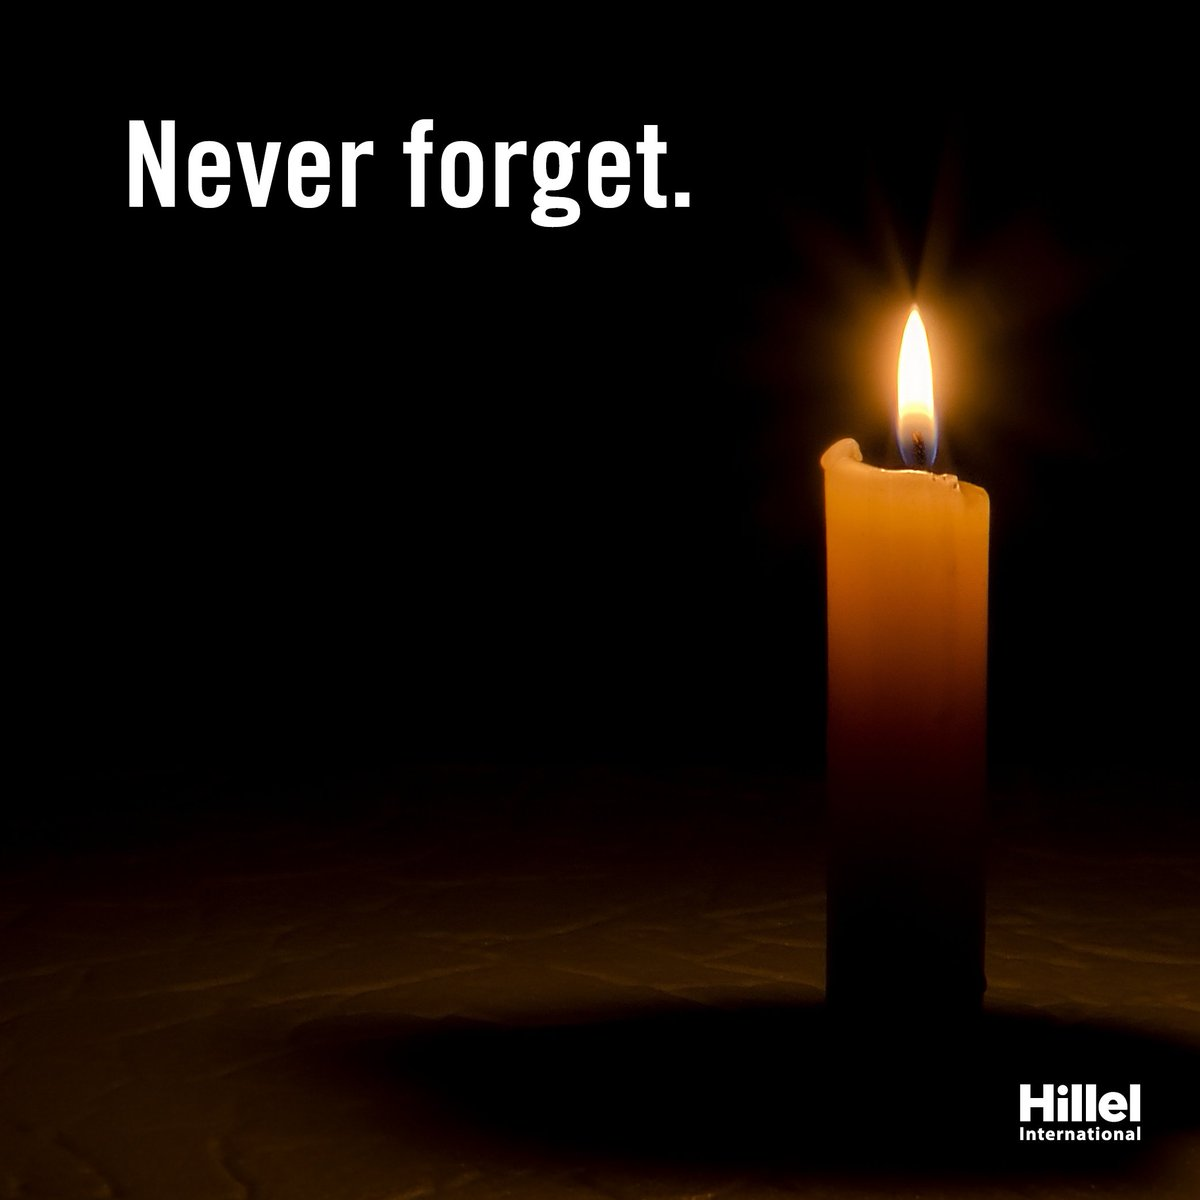 Today is Yom HaShoah (Holocaust Remembrance Day).  Join us in remembering the millions of lives lost. https://t.co/m9KRFSTqgQ